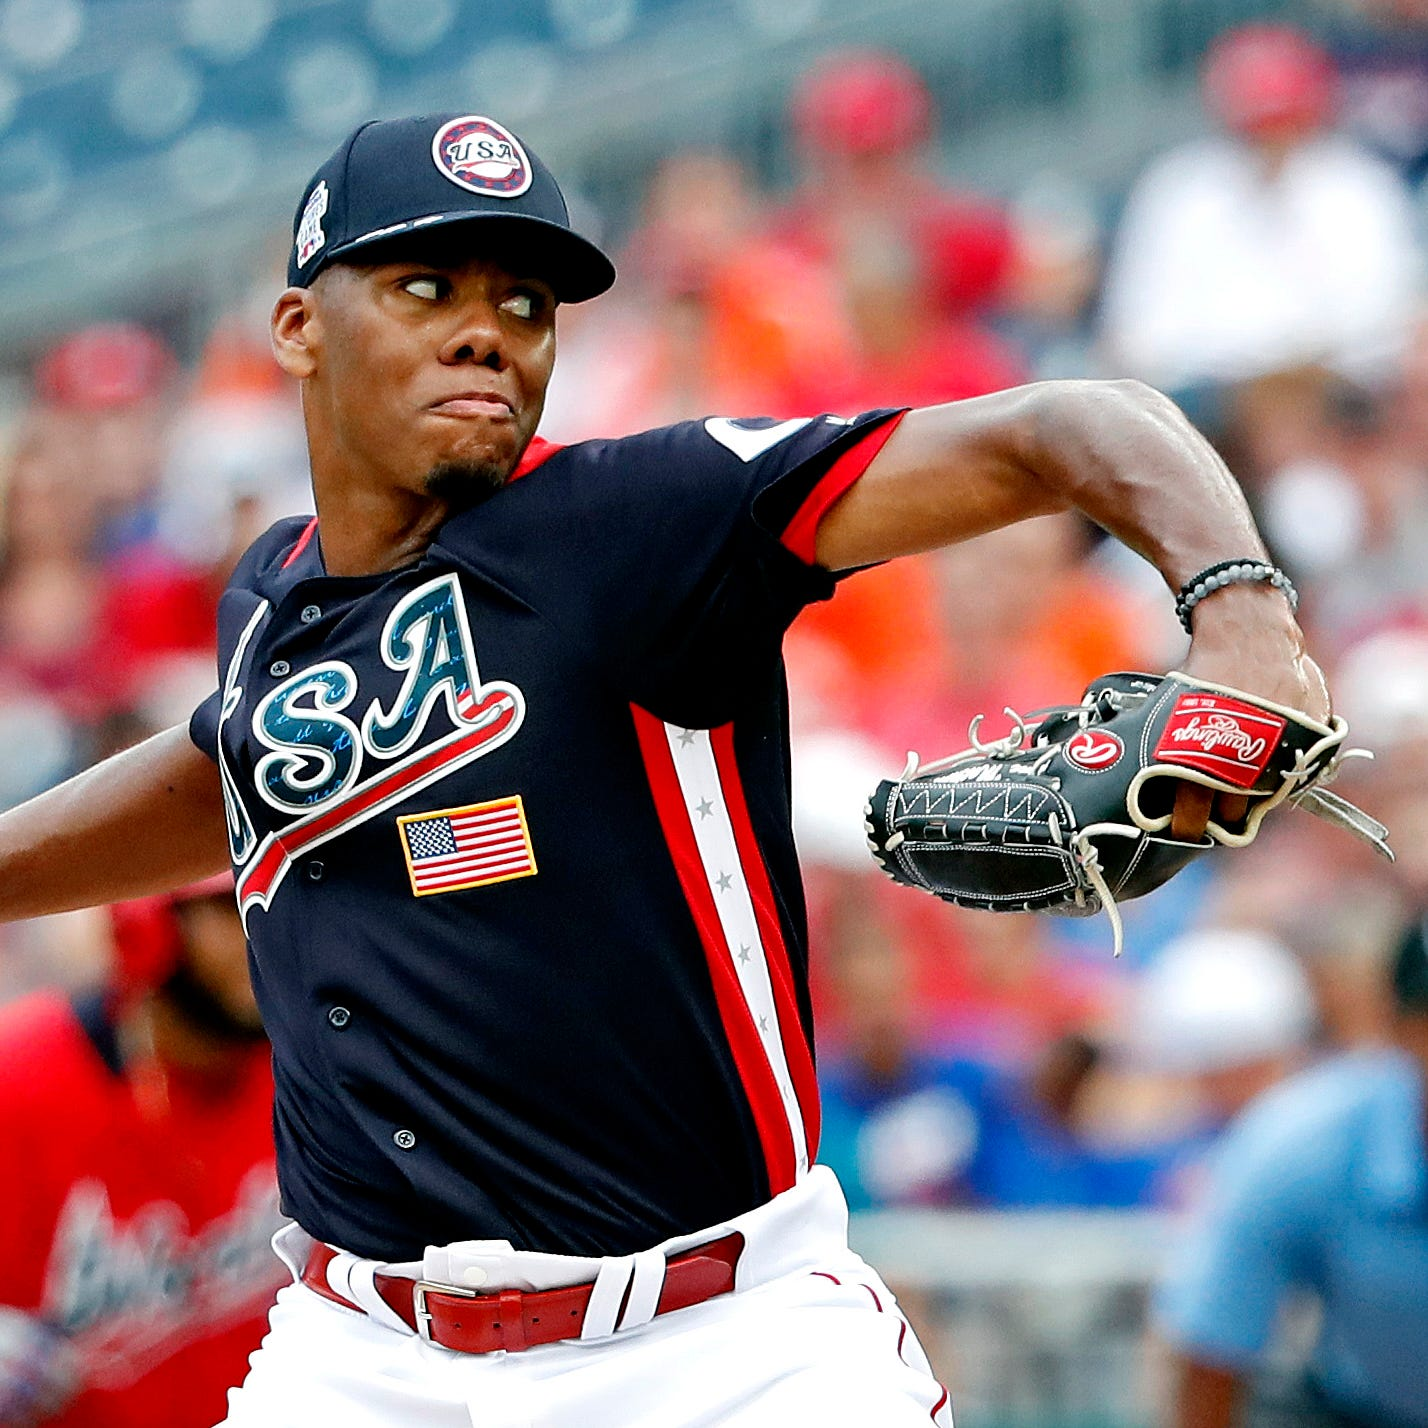 Cincinnati Reds top pitching prospect Hunter Greene to have Tommy John surgery next week